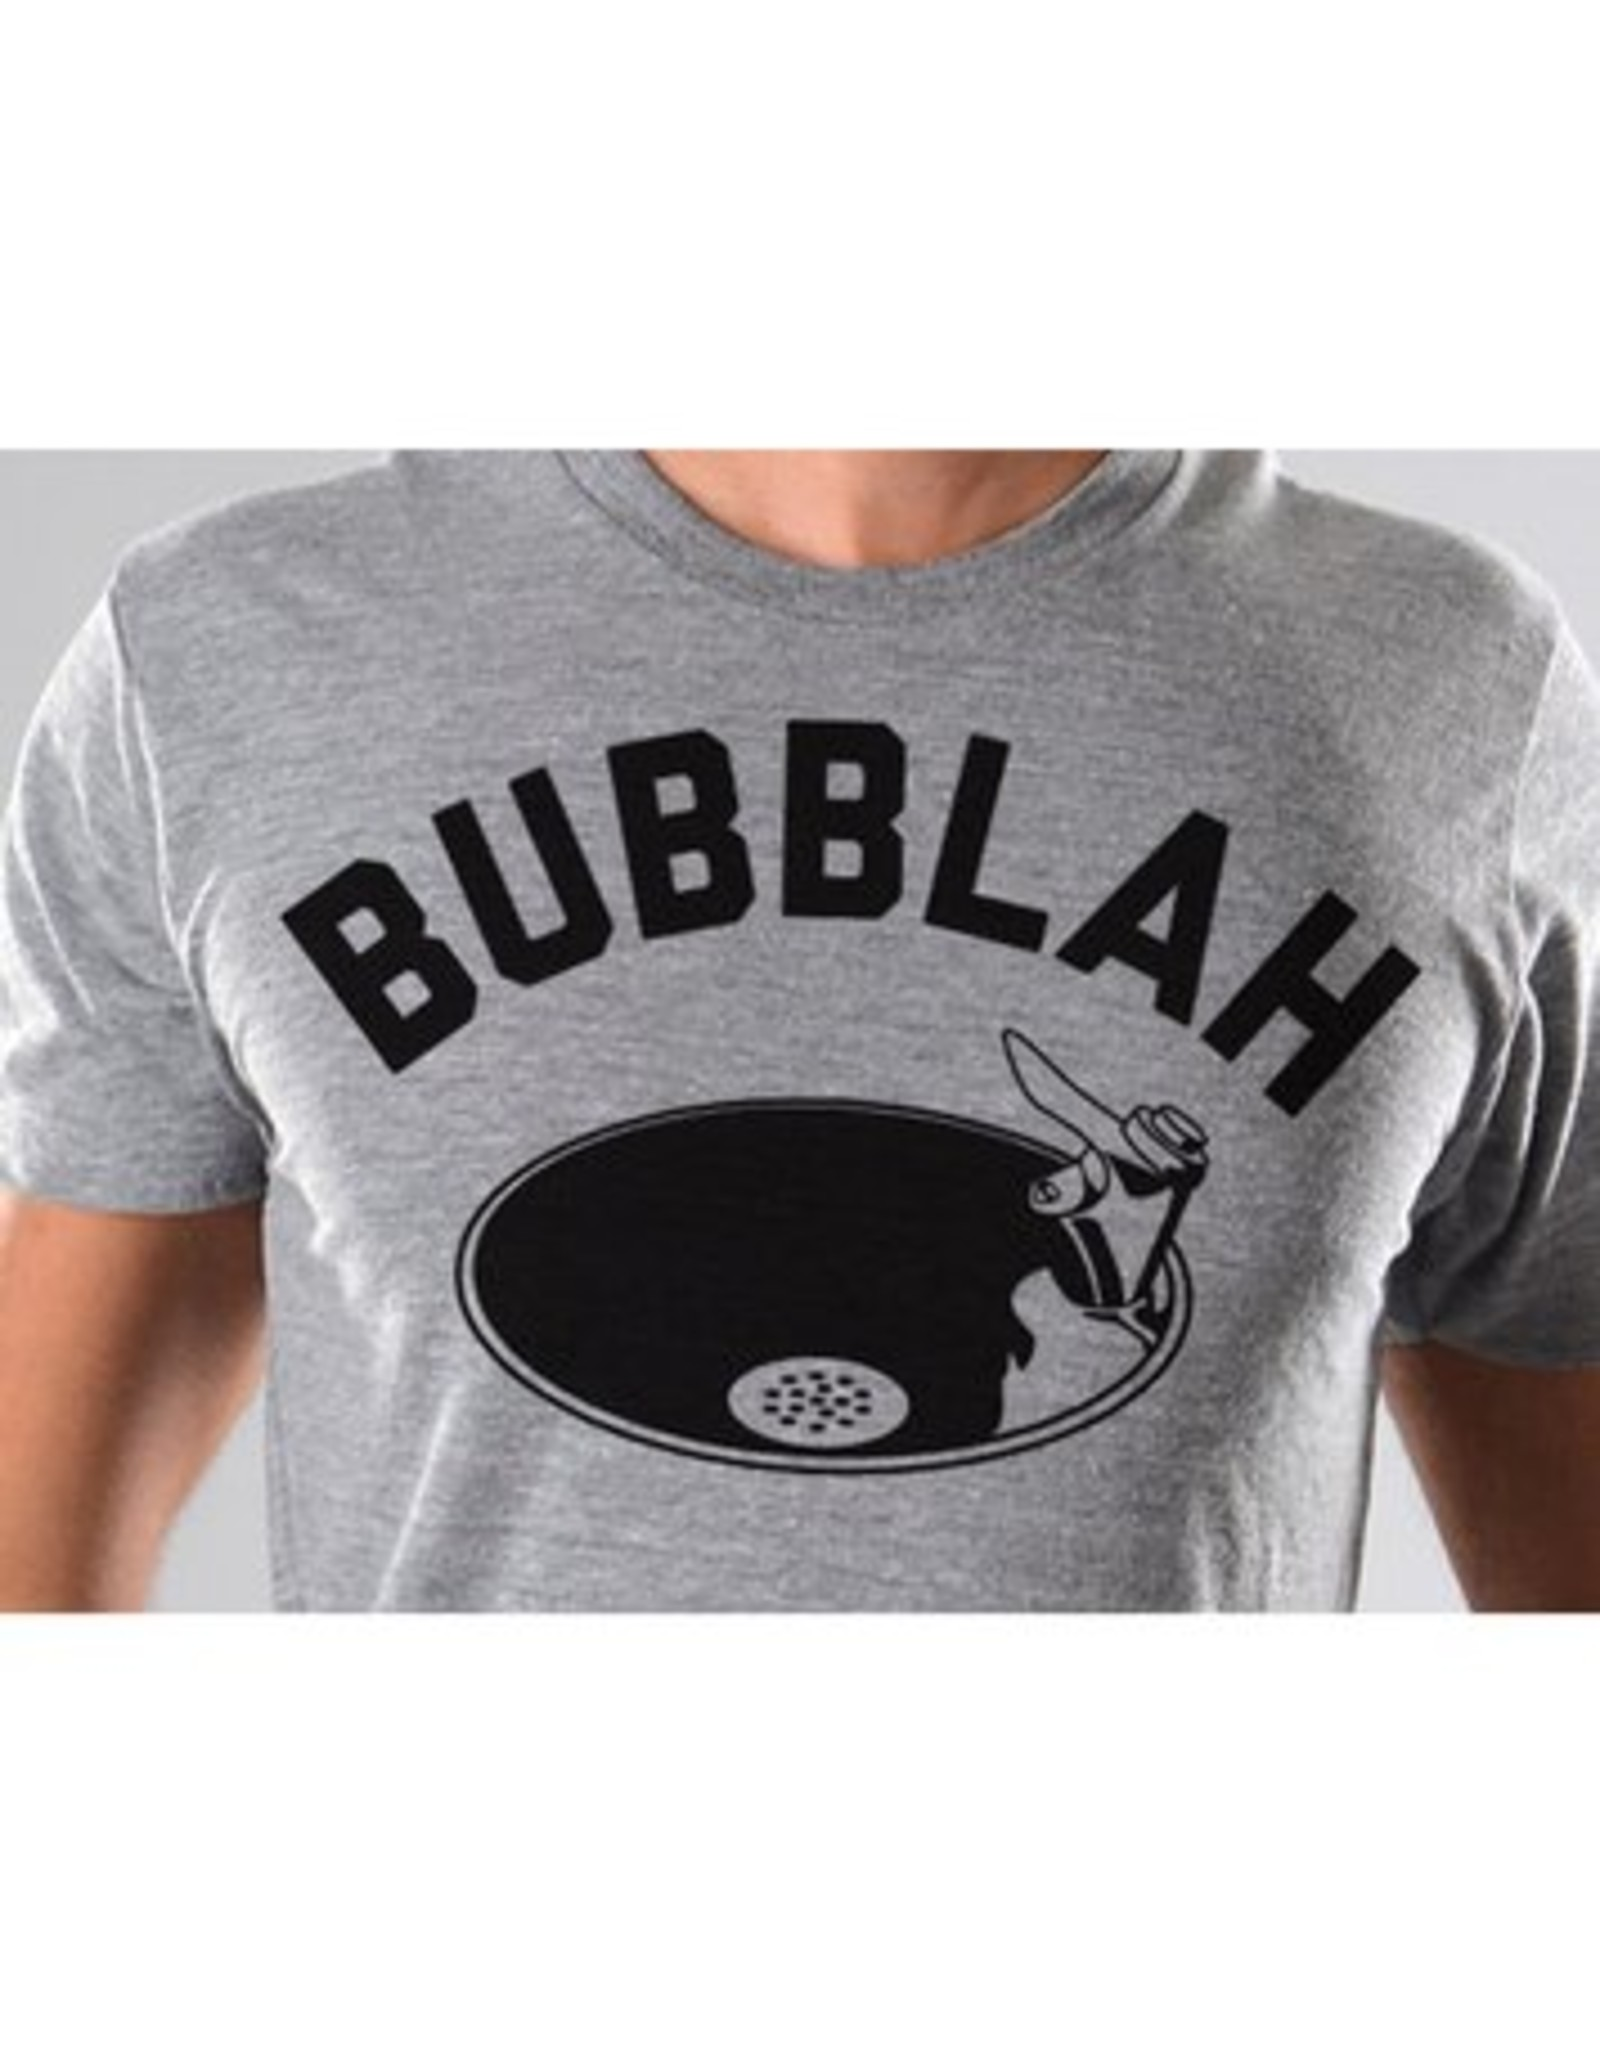 Bubblah T-Shirt